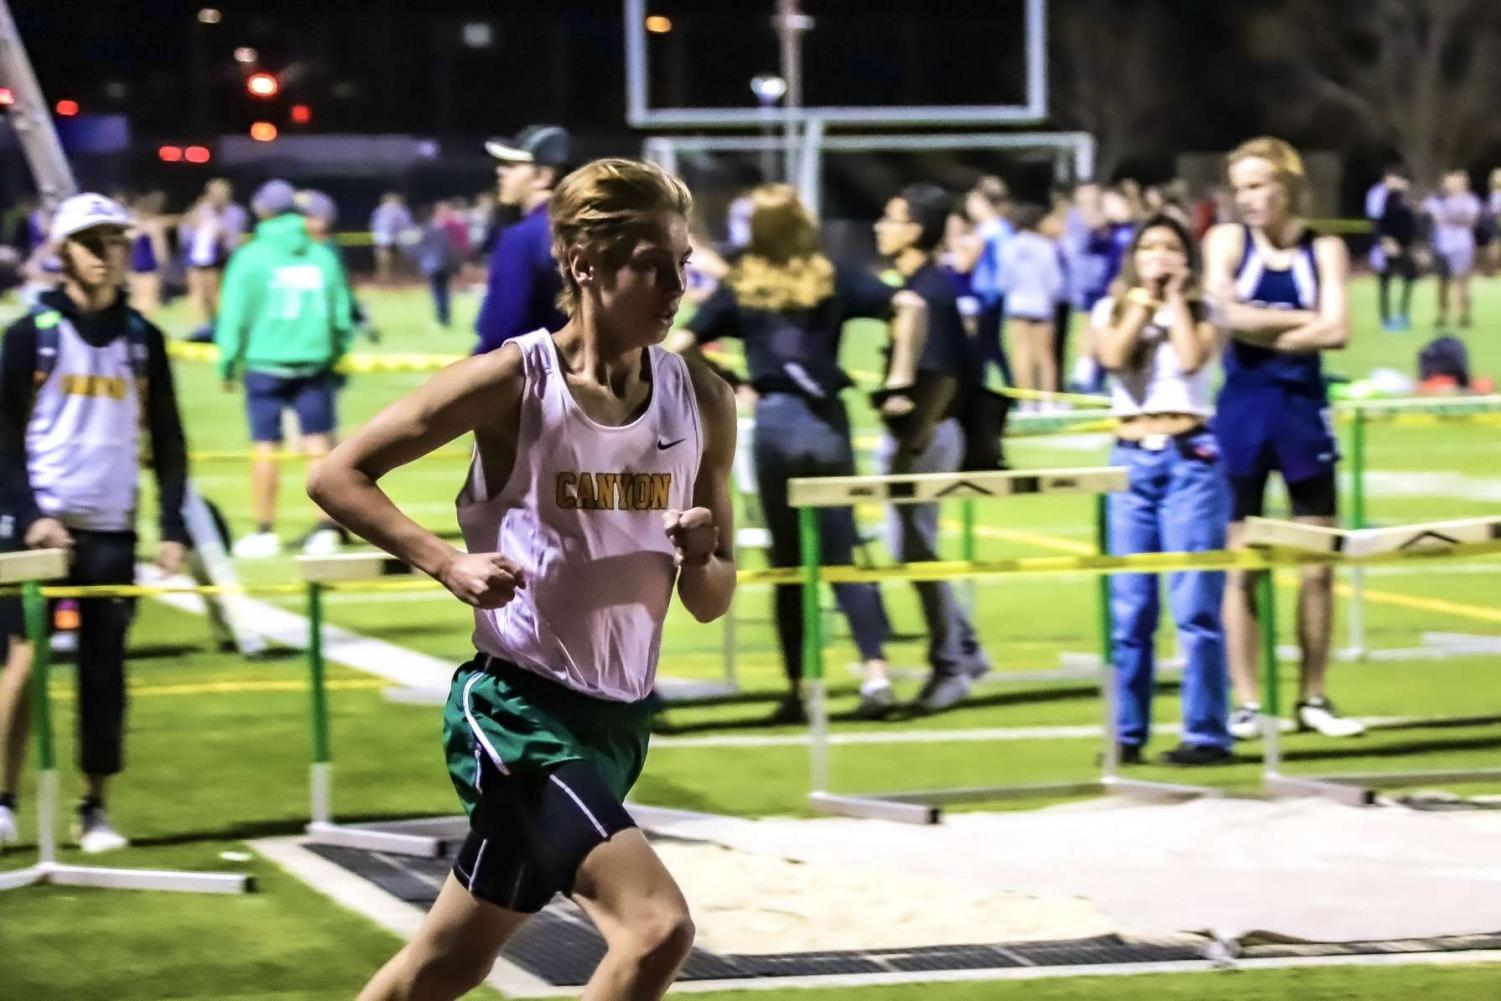 Cross+country%3A+One+Hill+of+a+Sport